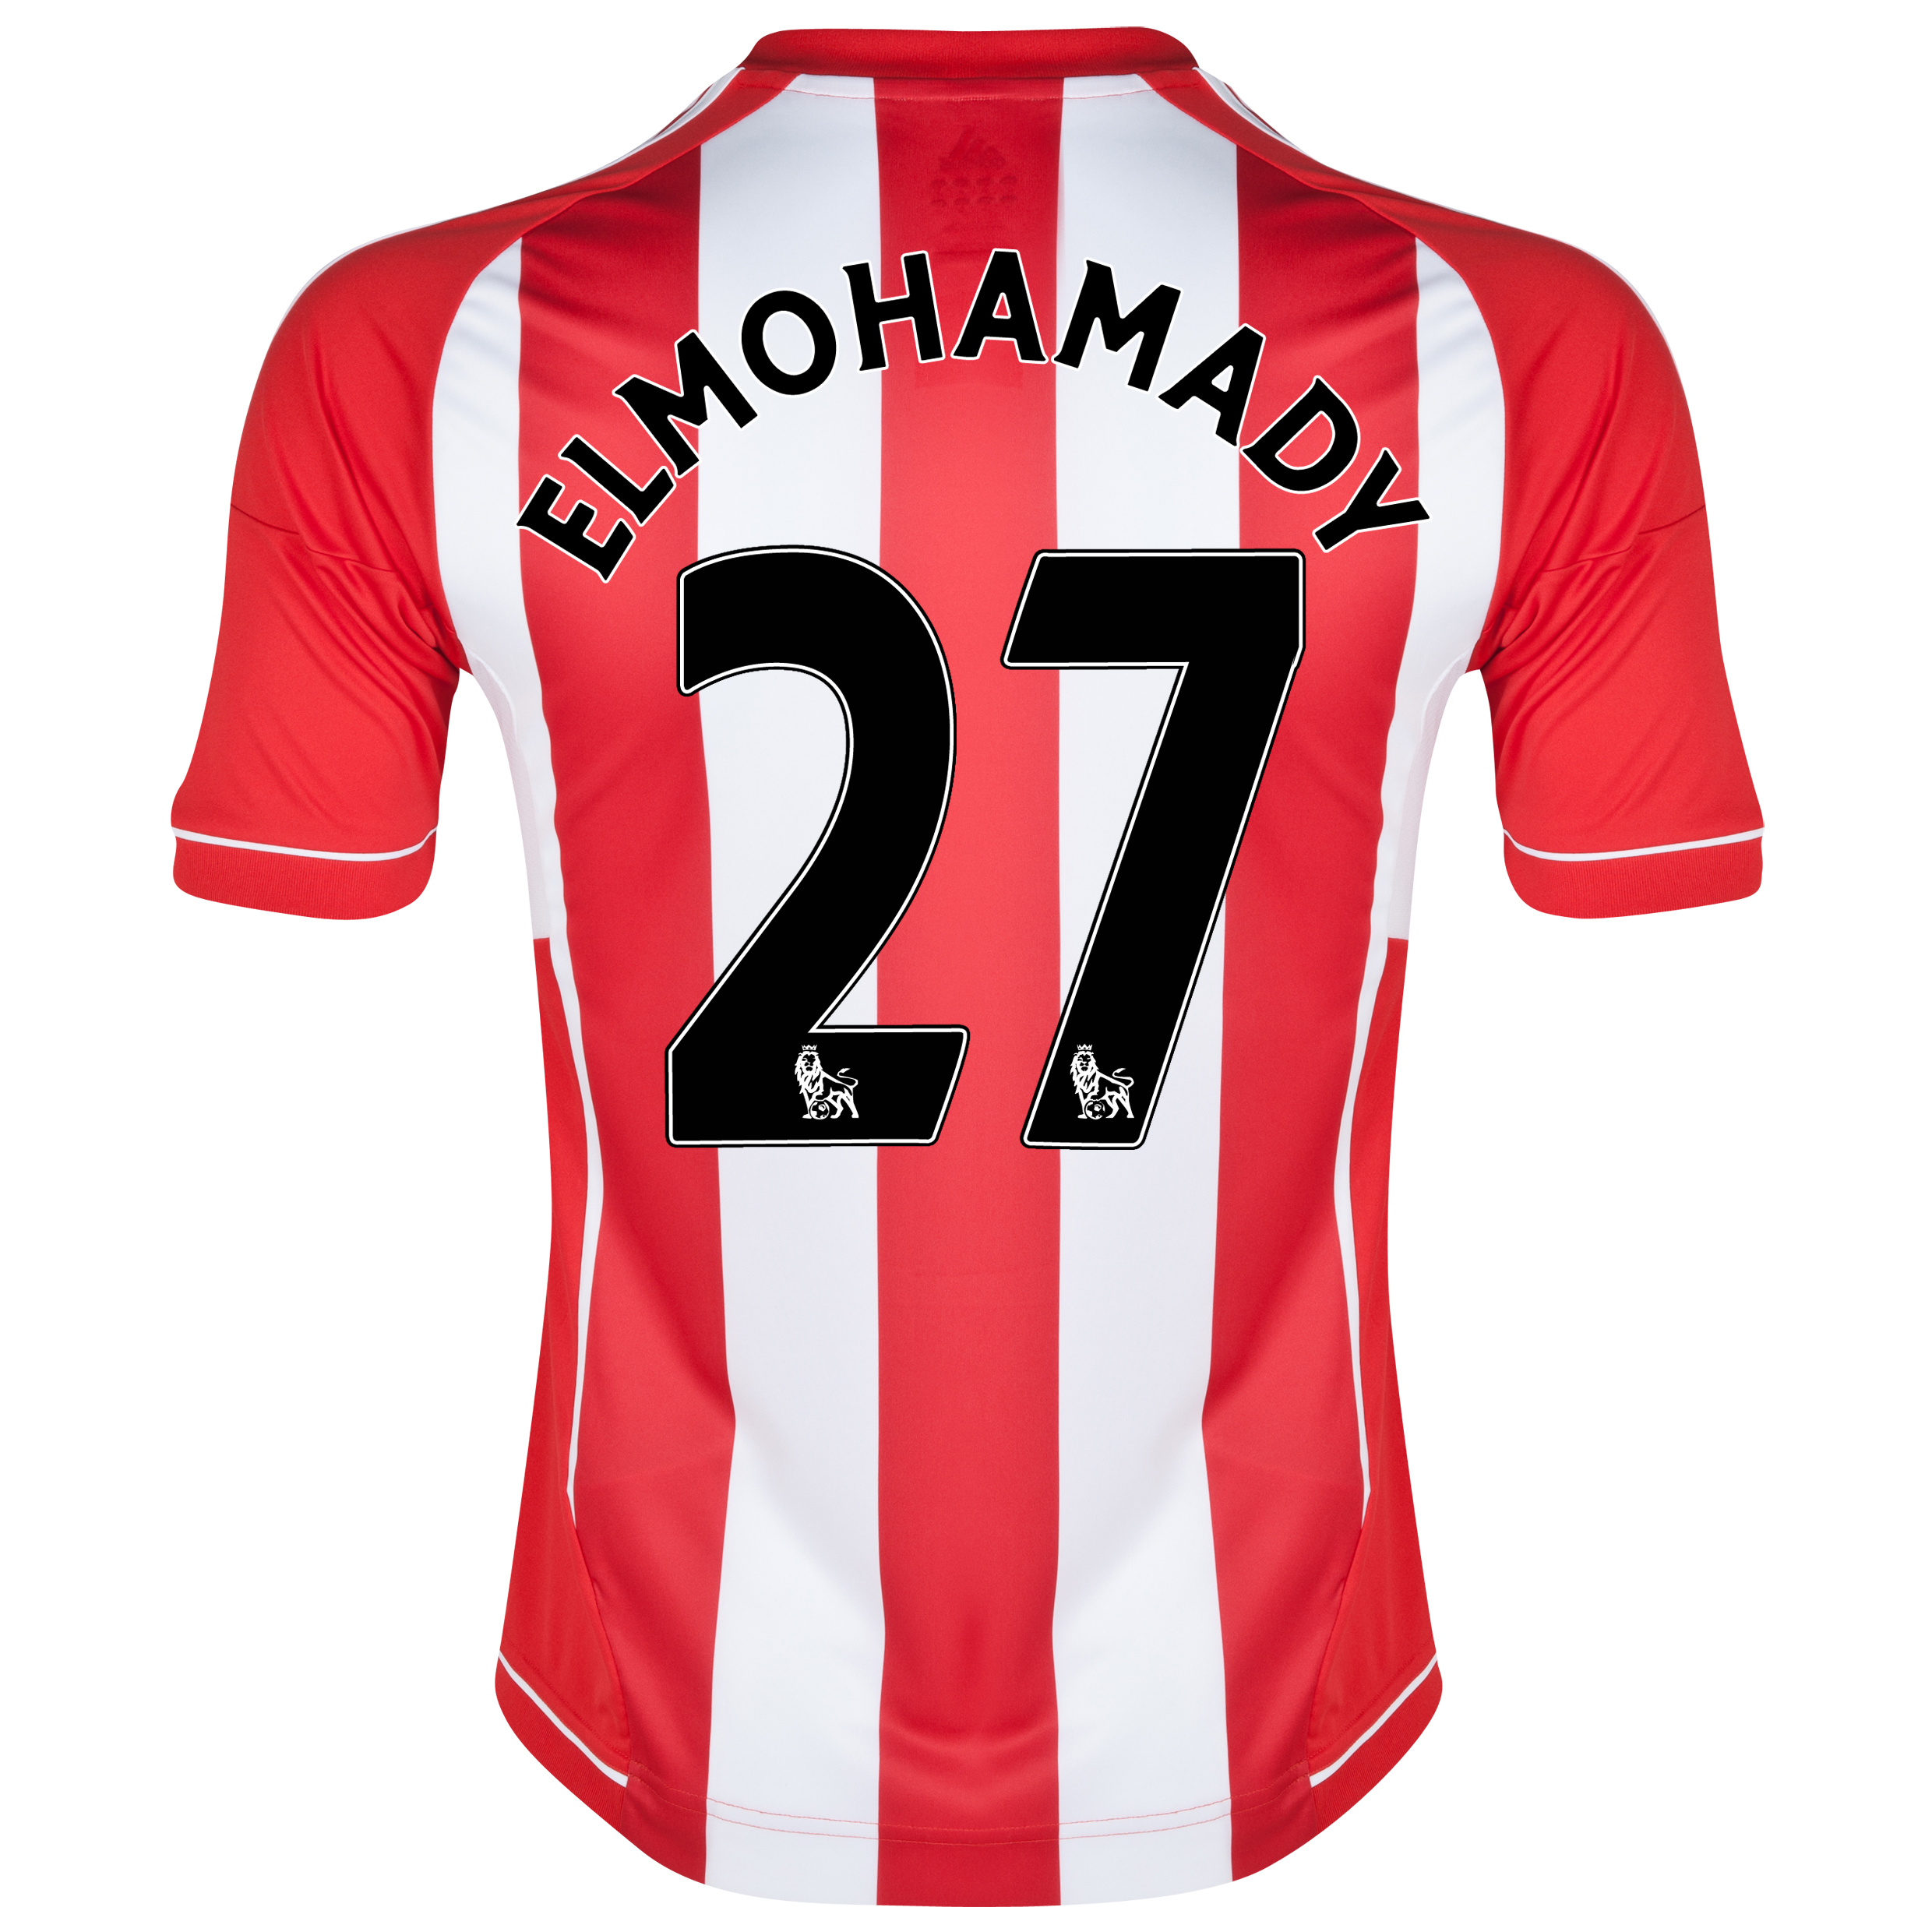 Sunderland Home Shirt 2012/13 with Elmohamady 27 printing